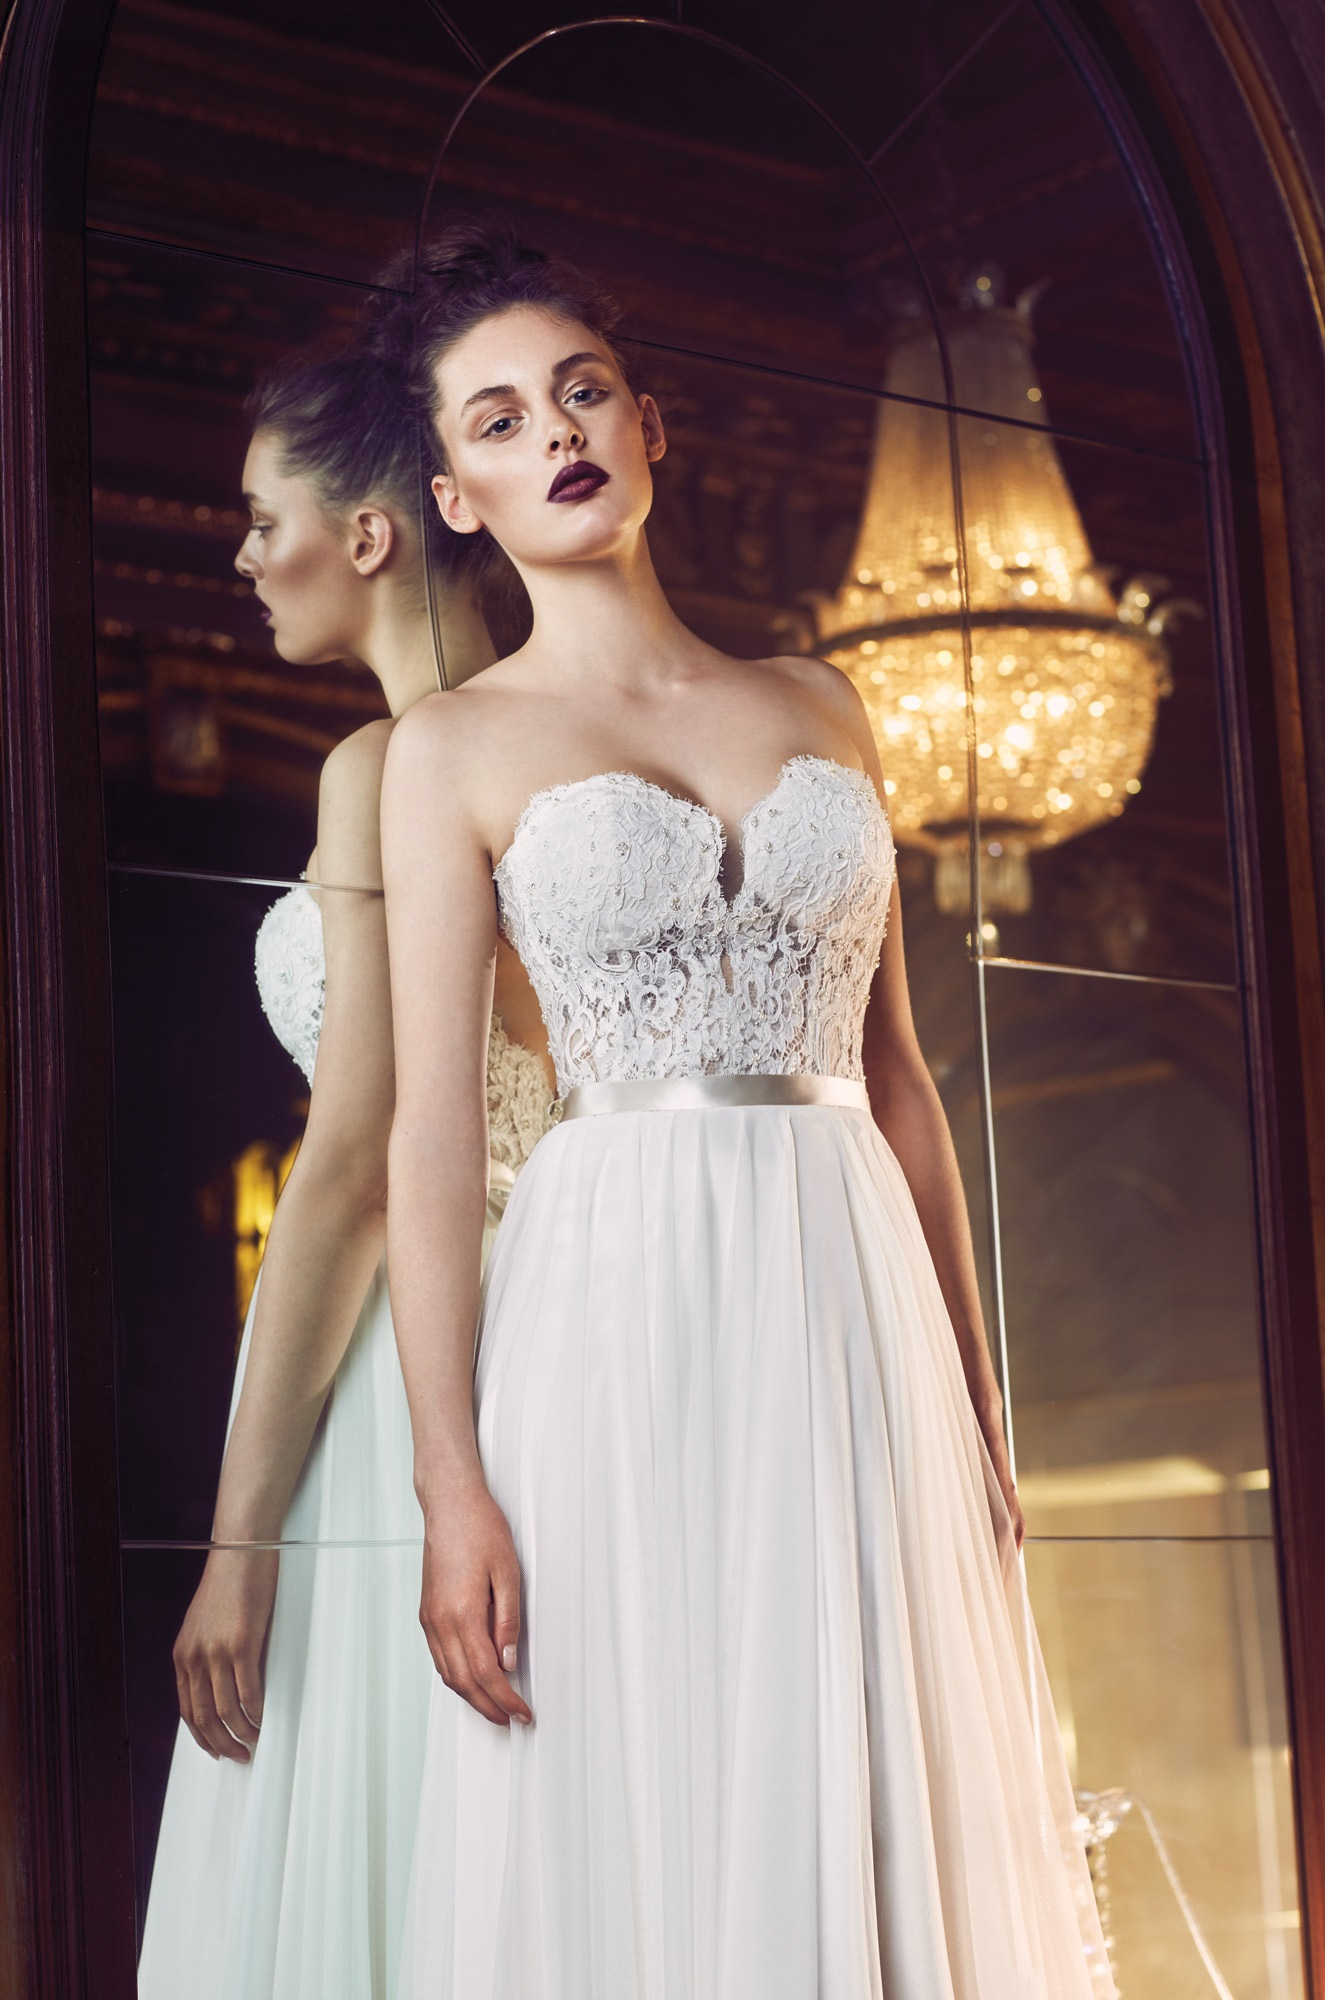 Gathered Tulle Wedding Dress - Style #4707 | Paloma Blanca